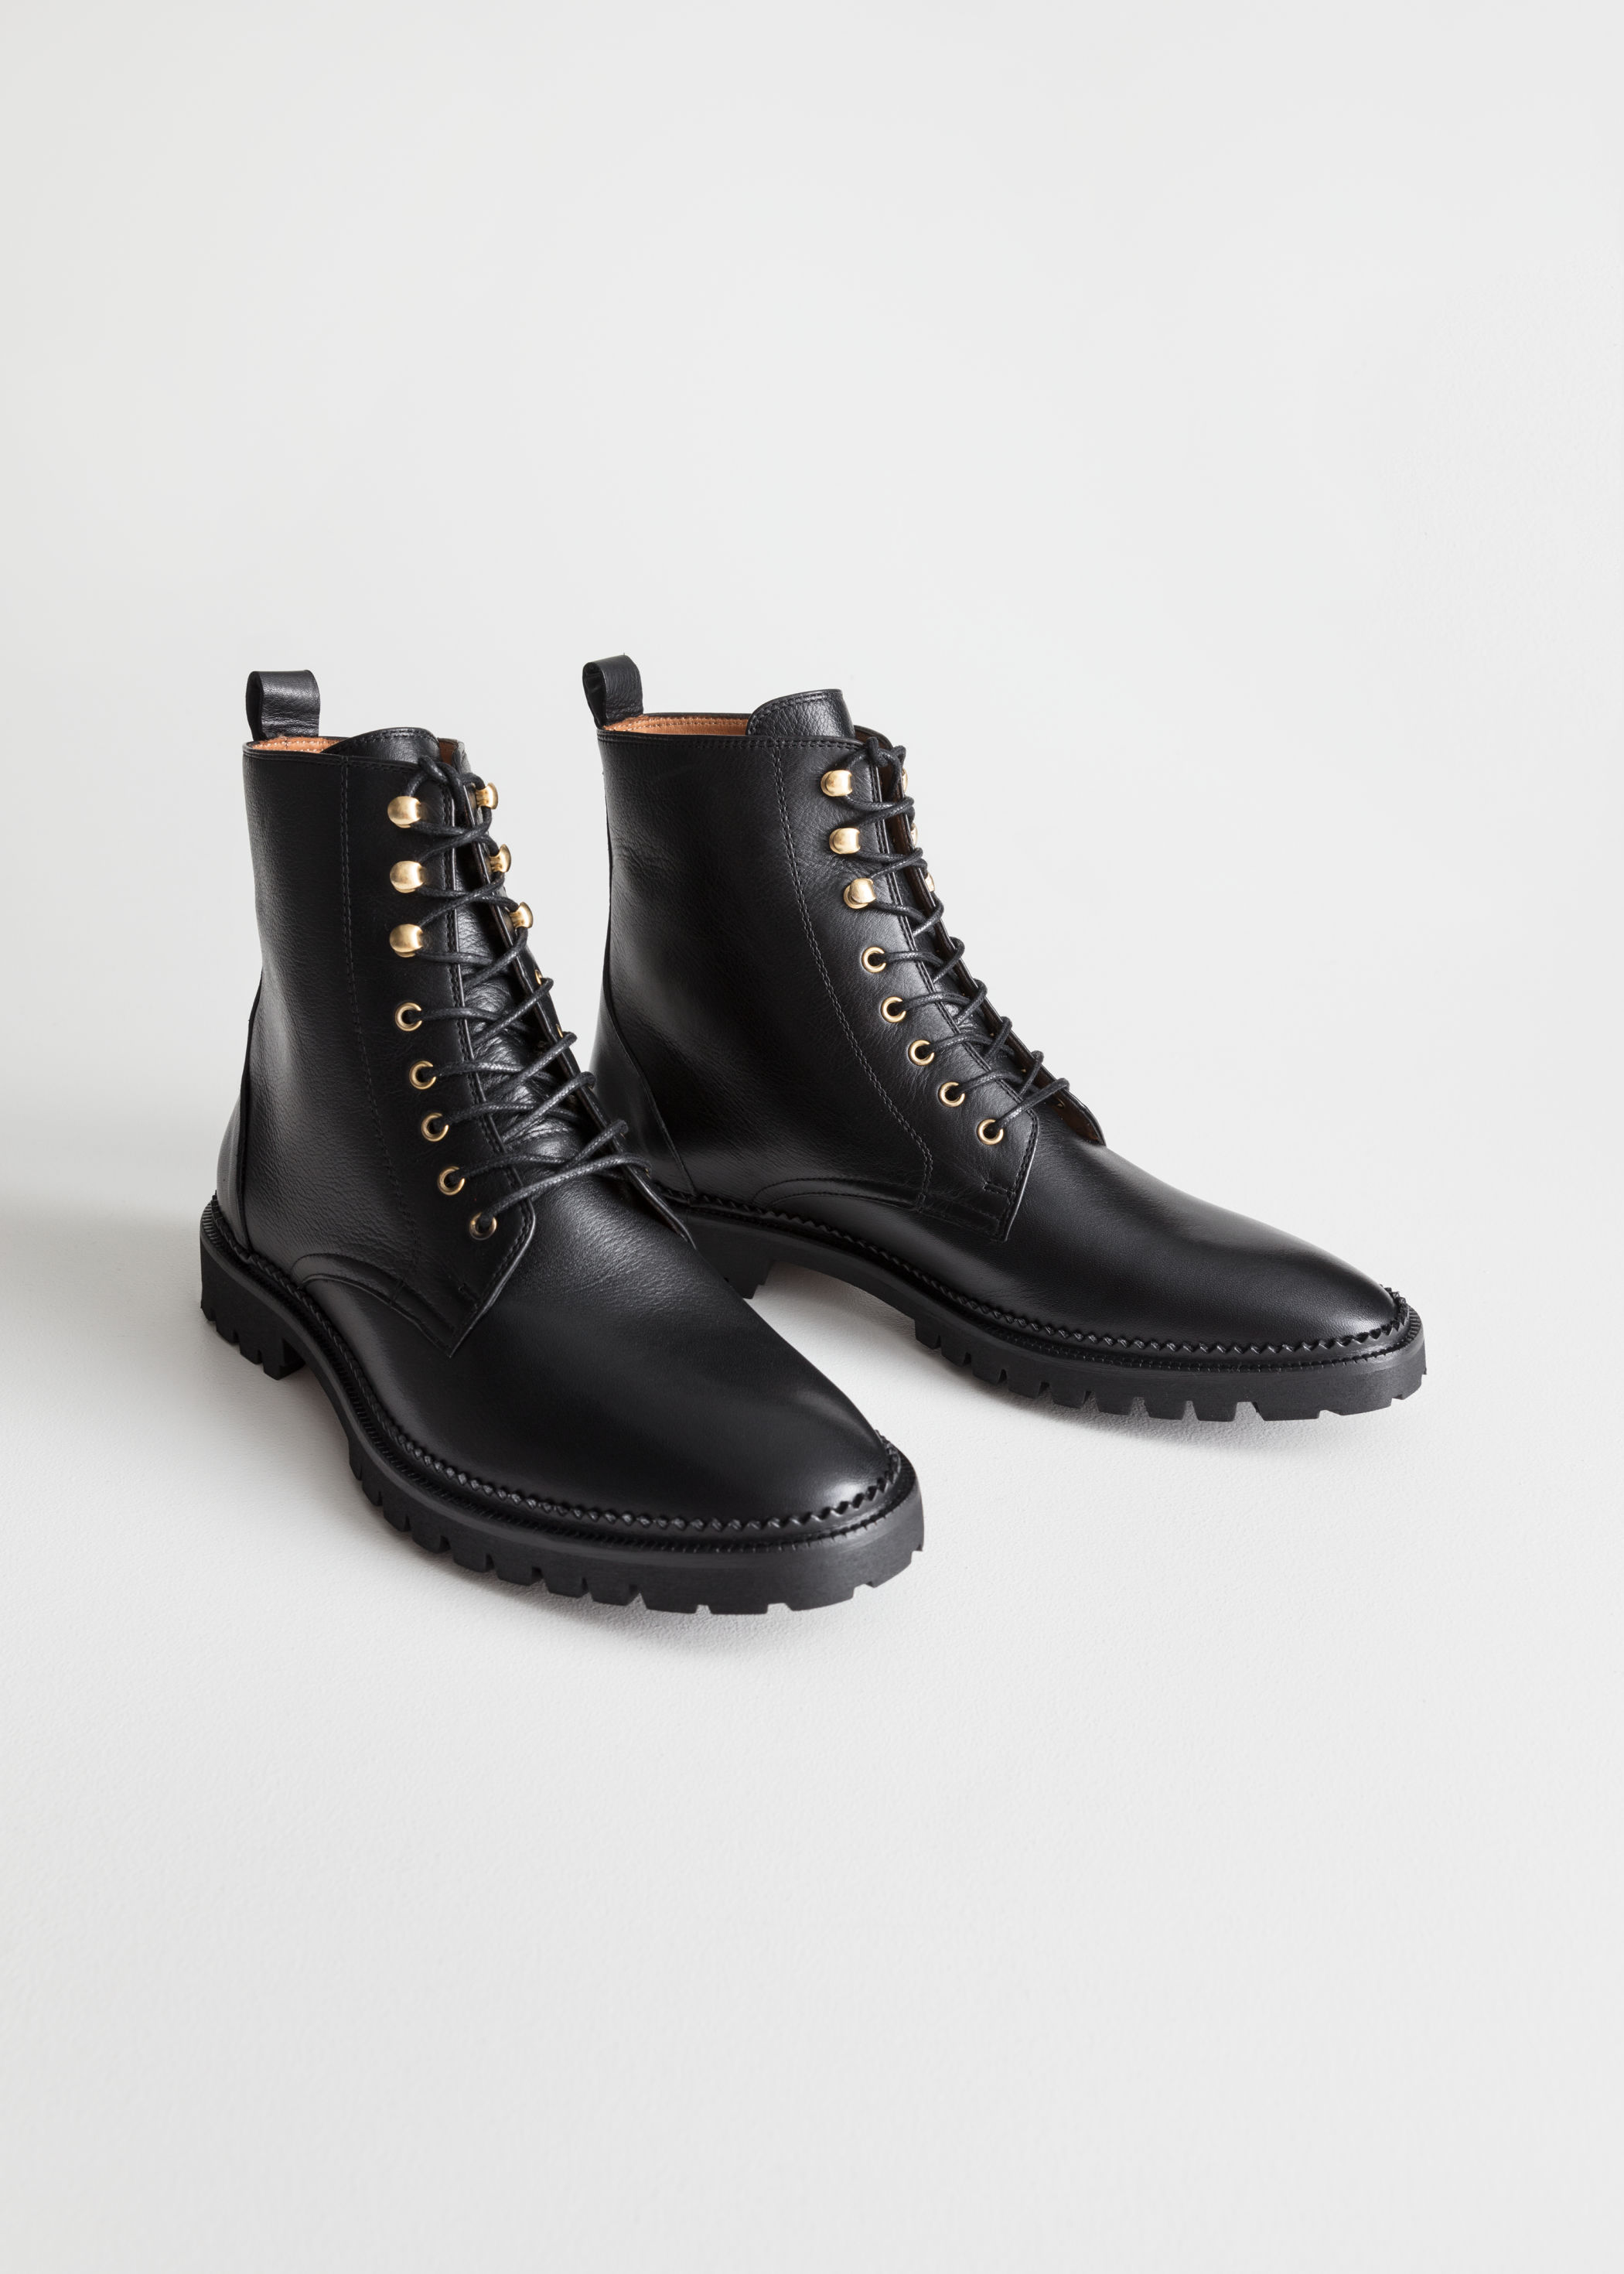 & Other Stories Lace up Boots  £135